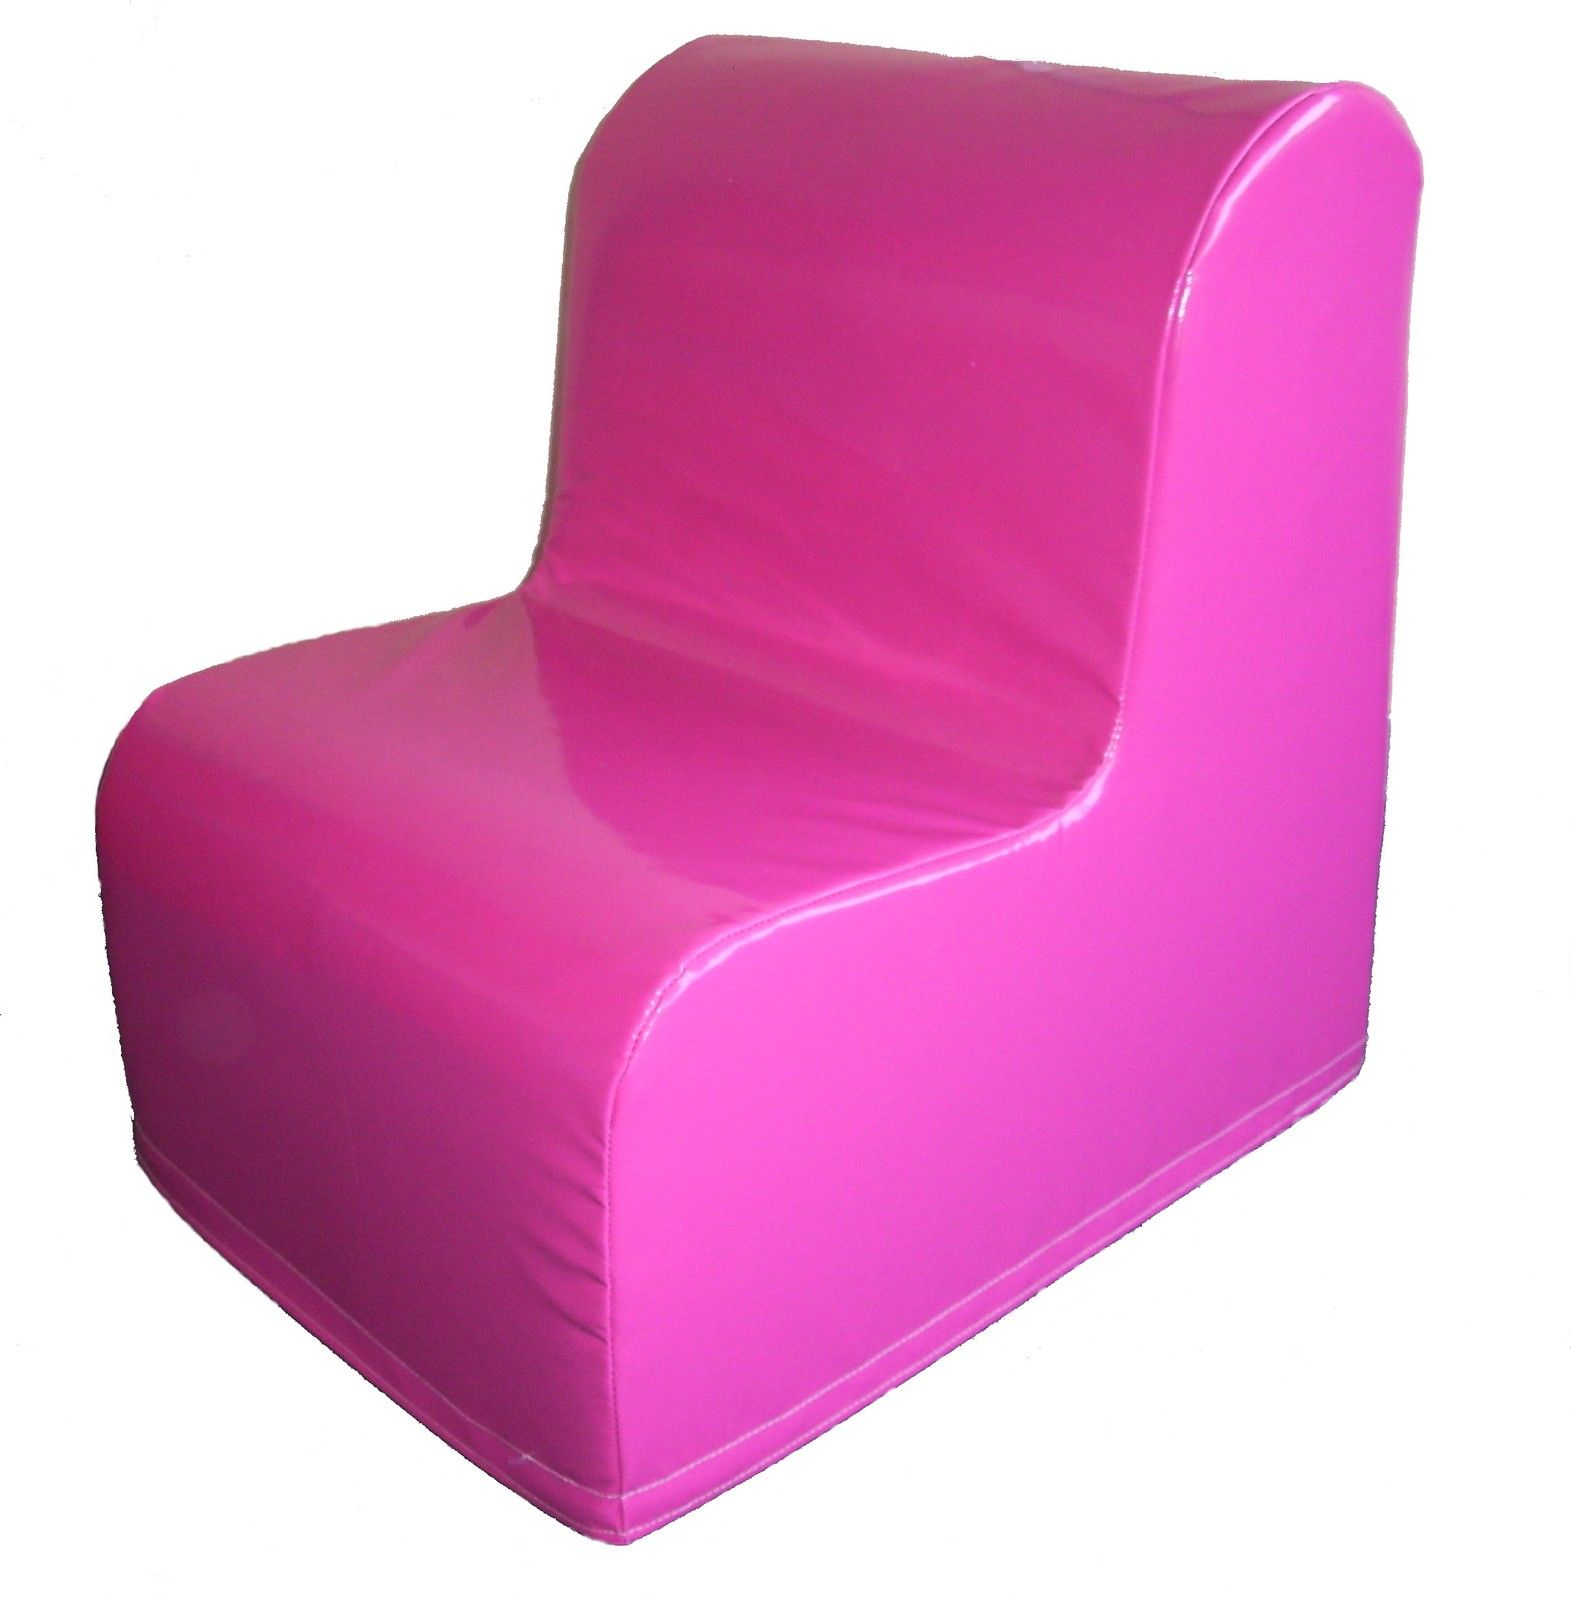 Toddler Soft Chair Nursery Furniture Soft Play Kids Modular Chair